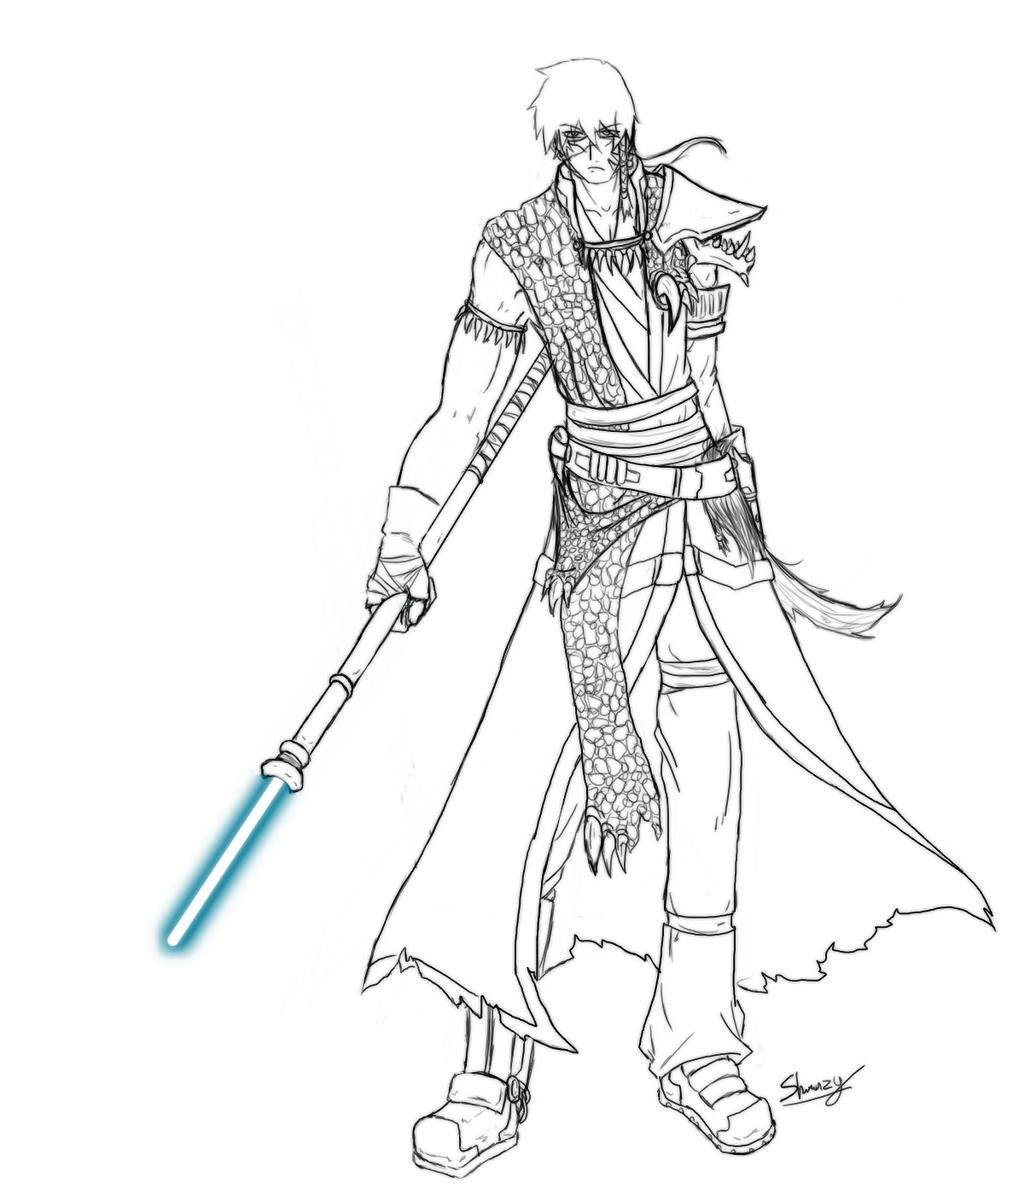 jedi coloring pages - jedi oc star wars by shawnzy on deviantart